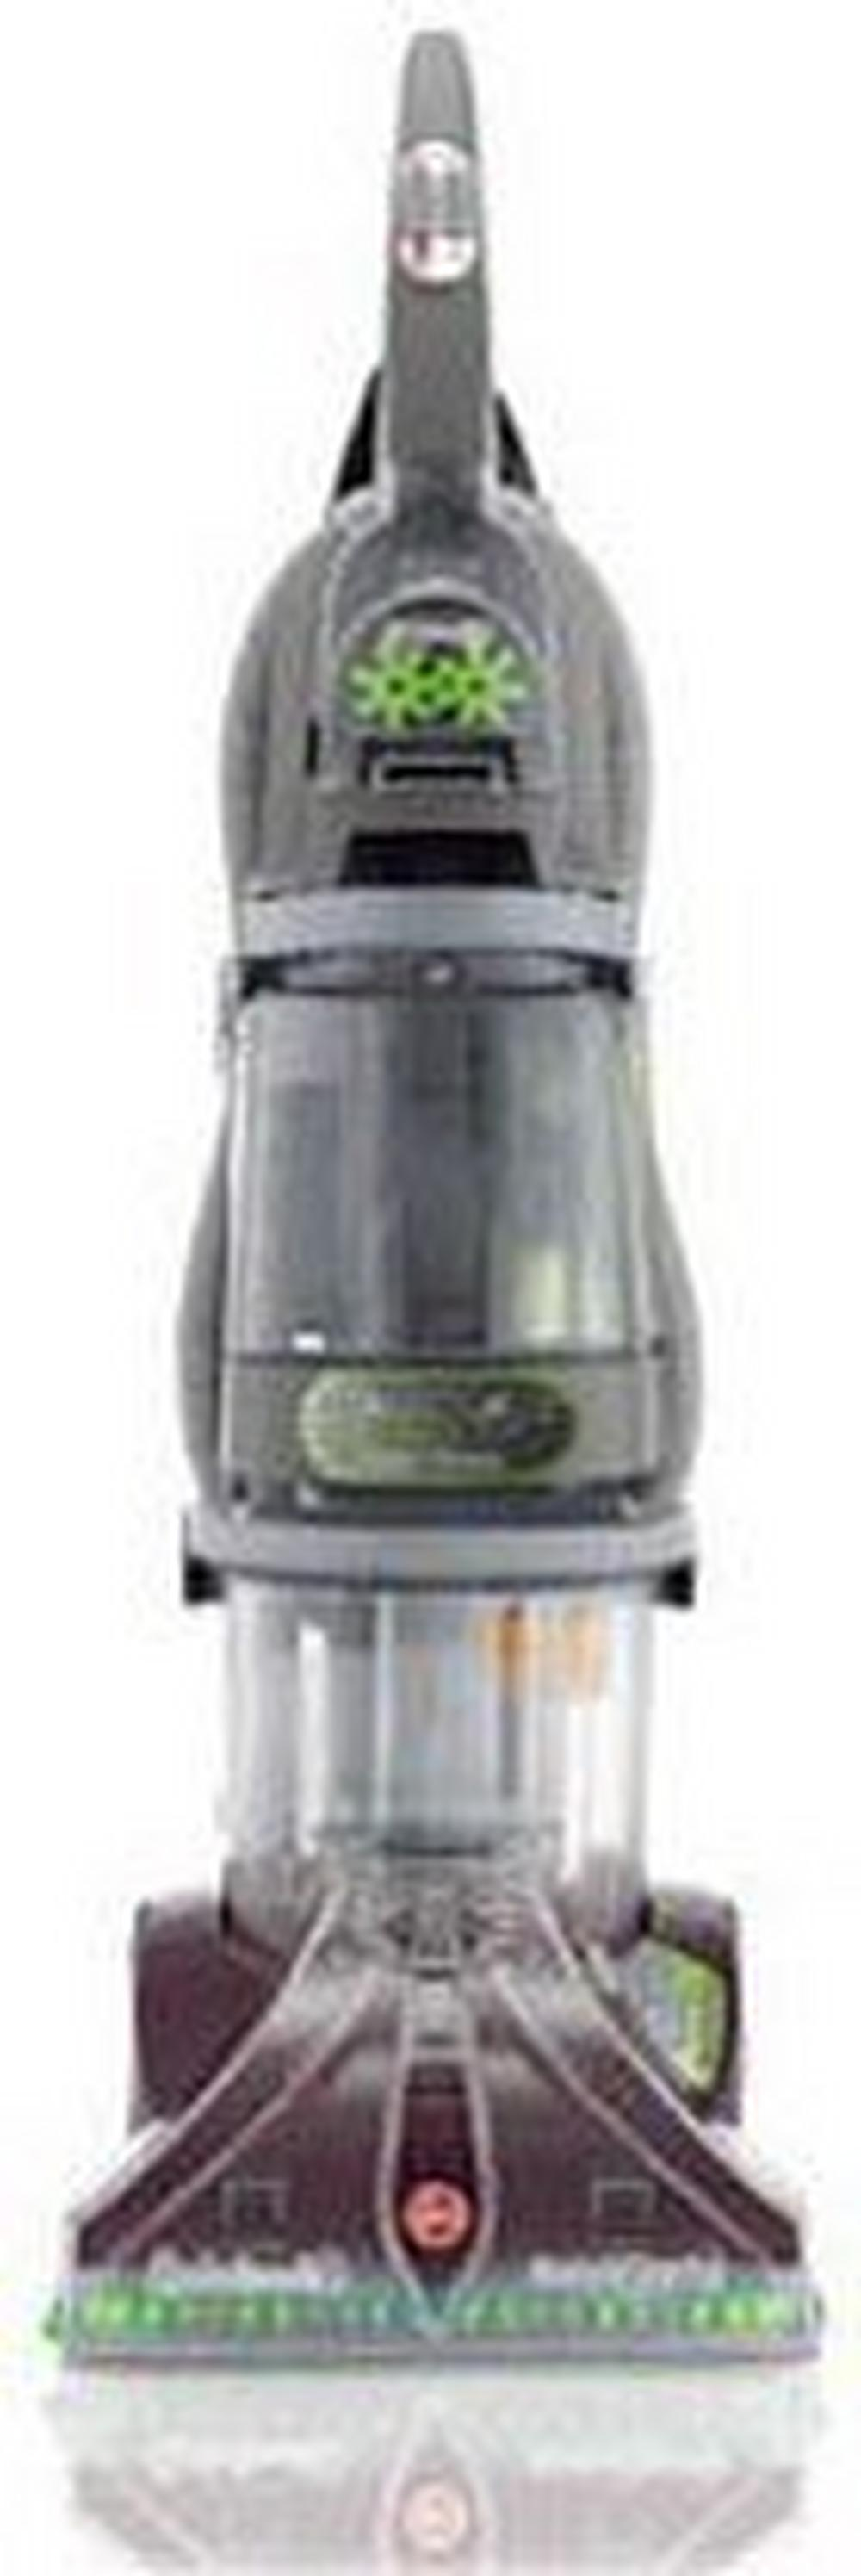 Reconditioned SteamVac Dual V Carpet Cleaner